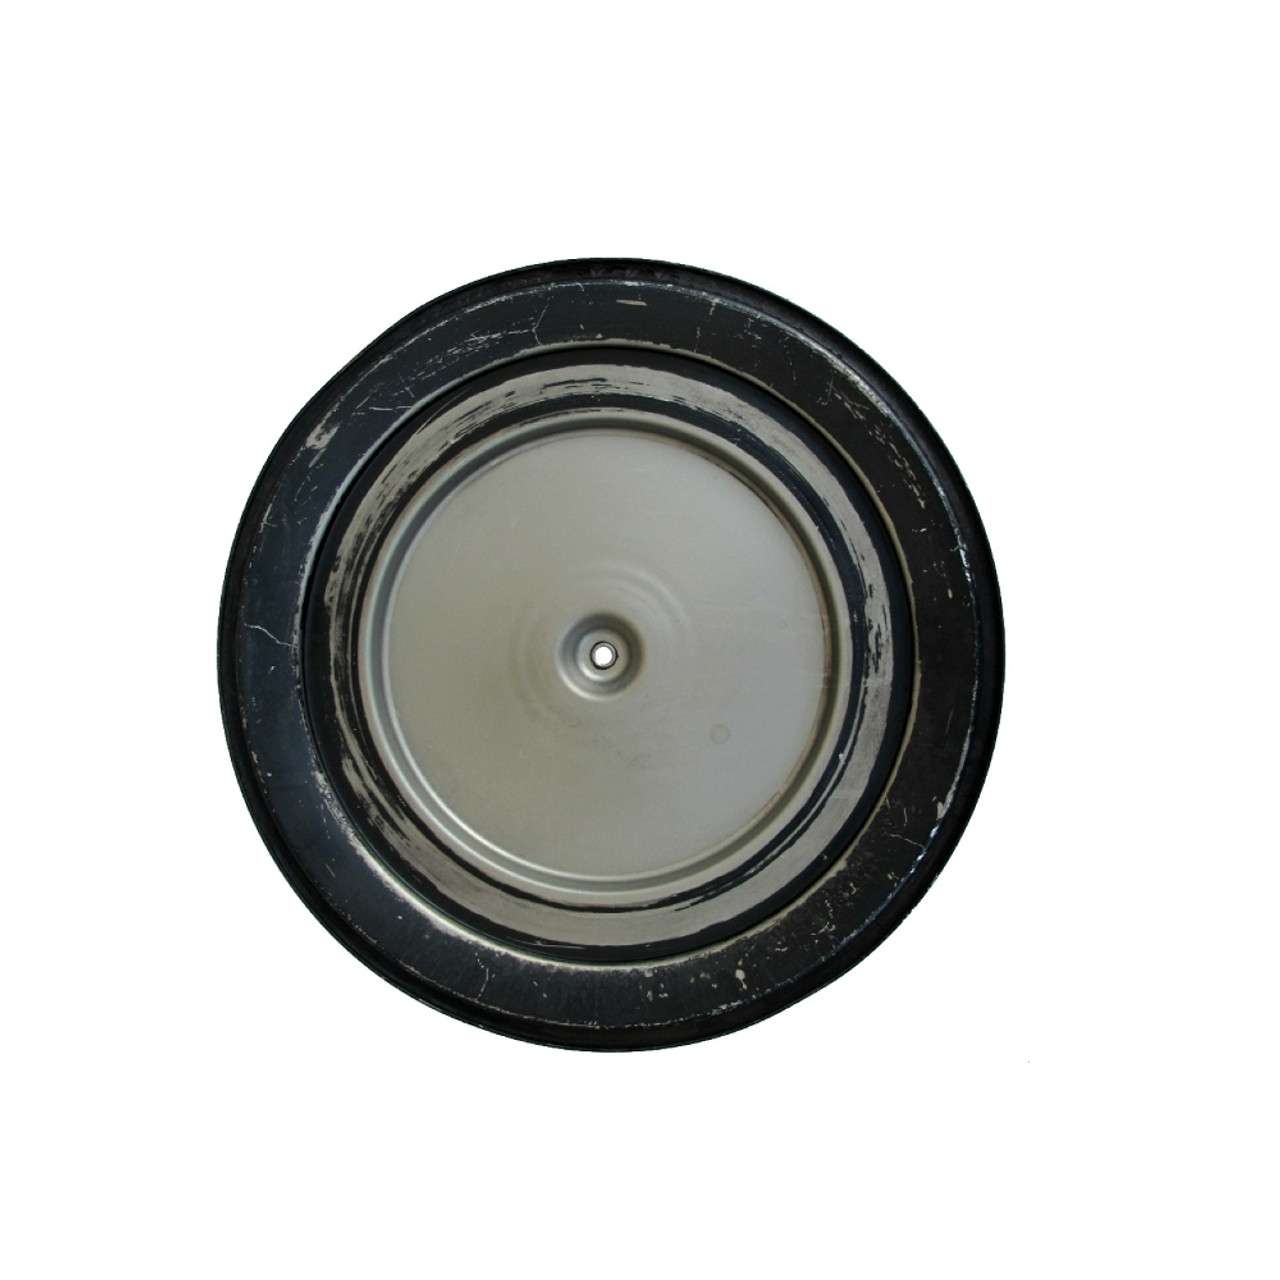 1982-1992 Camaro Firebird GM Air Cleaner Assembly and Lid. TBI